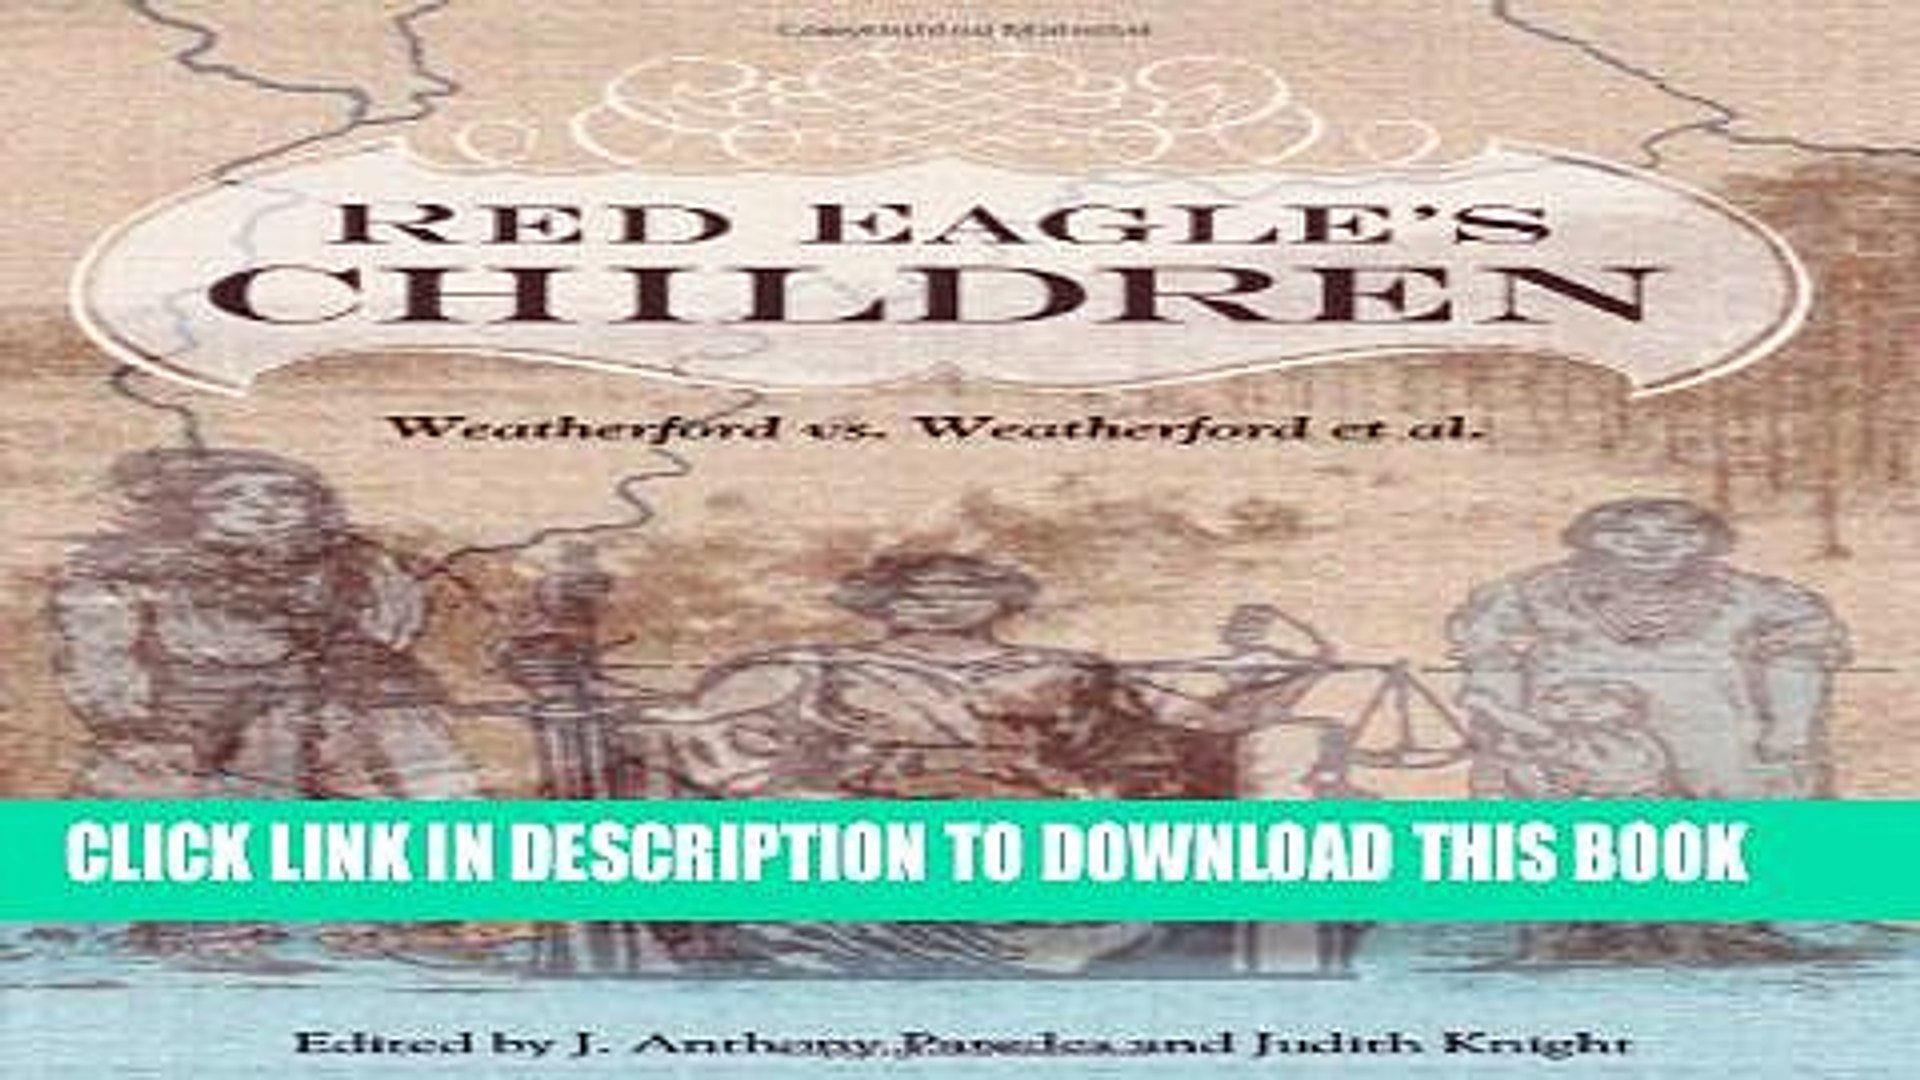 [PDF] Red Eagle s Children: Weatherford vs. Weatherford et al. (Contemporary American Indians)